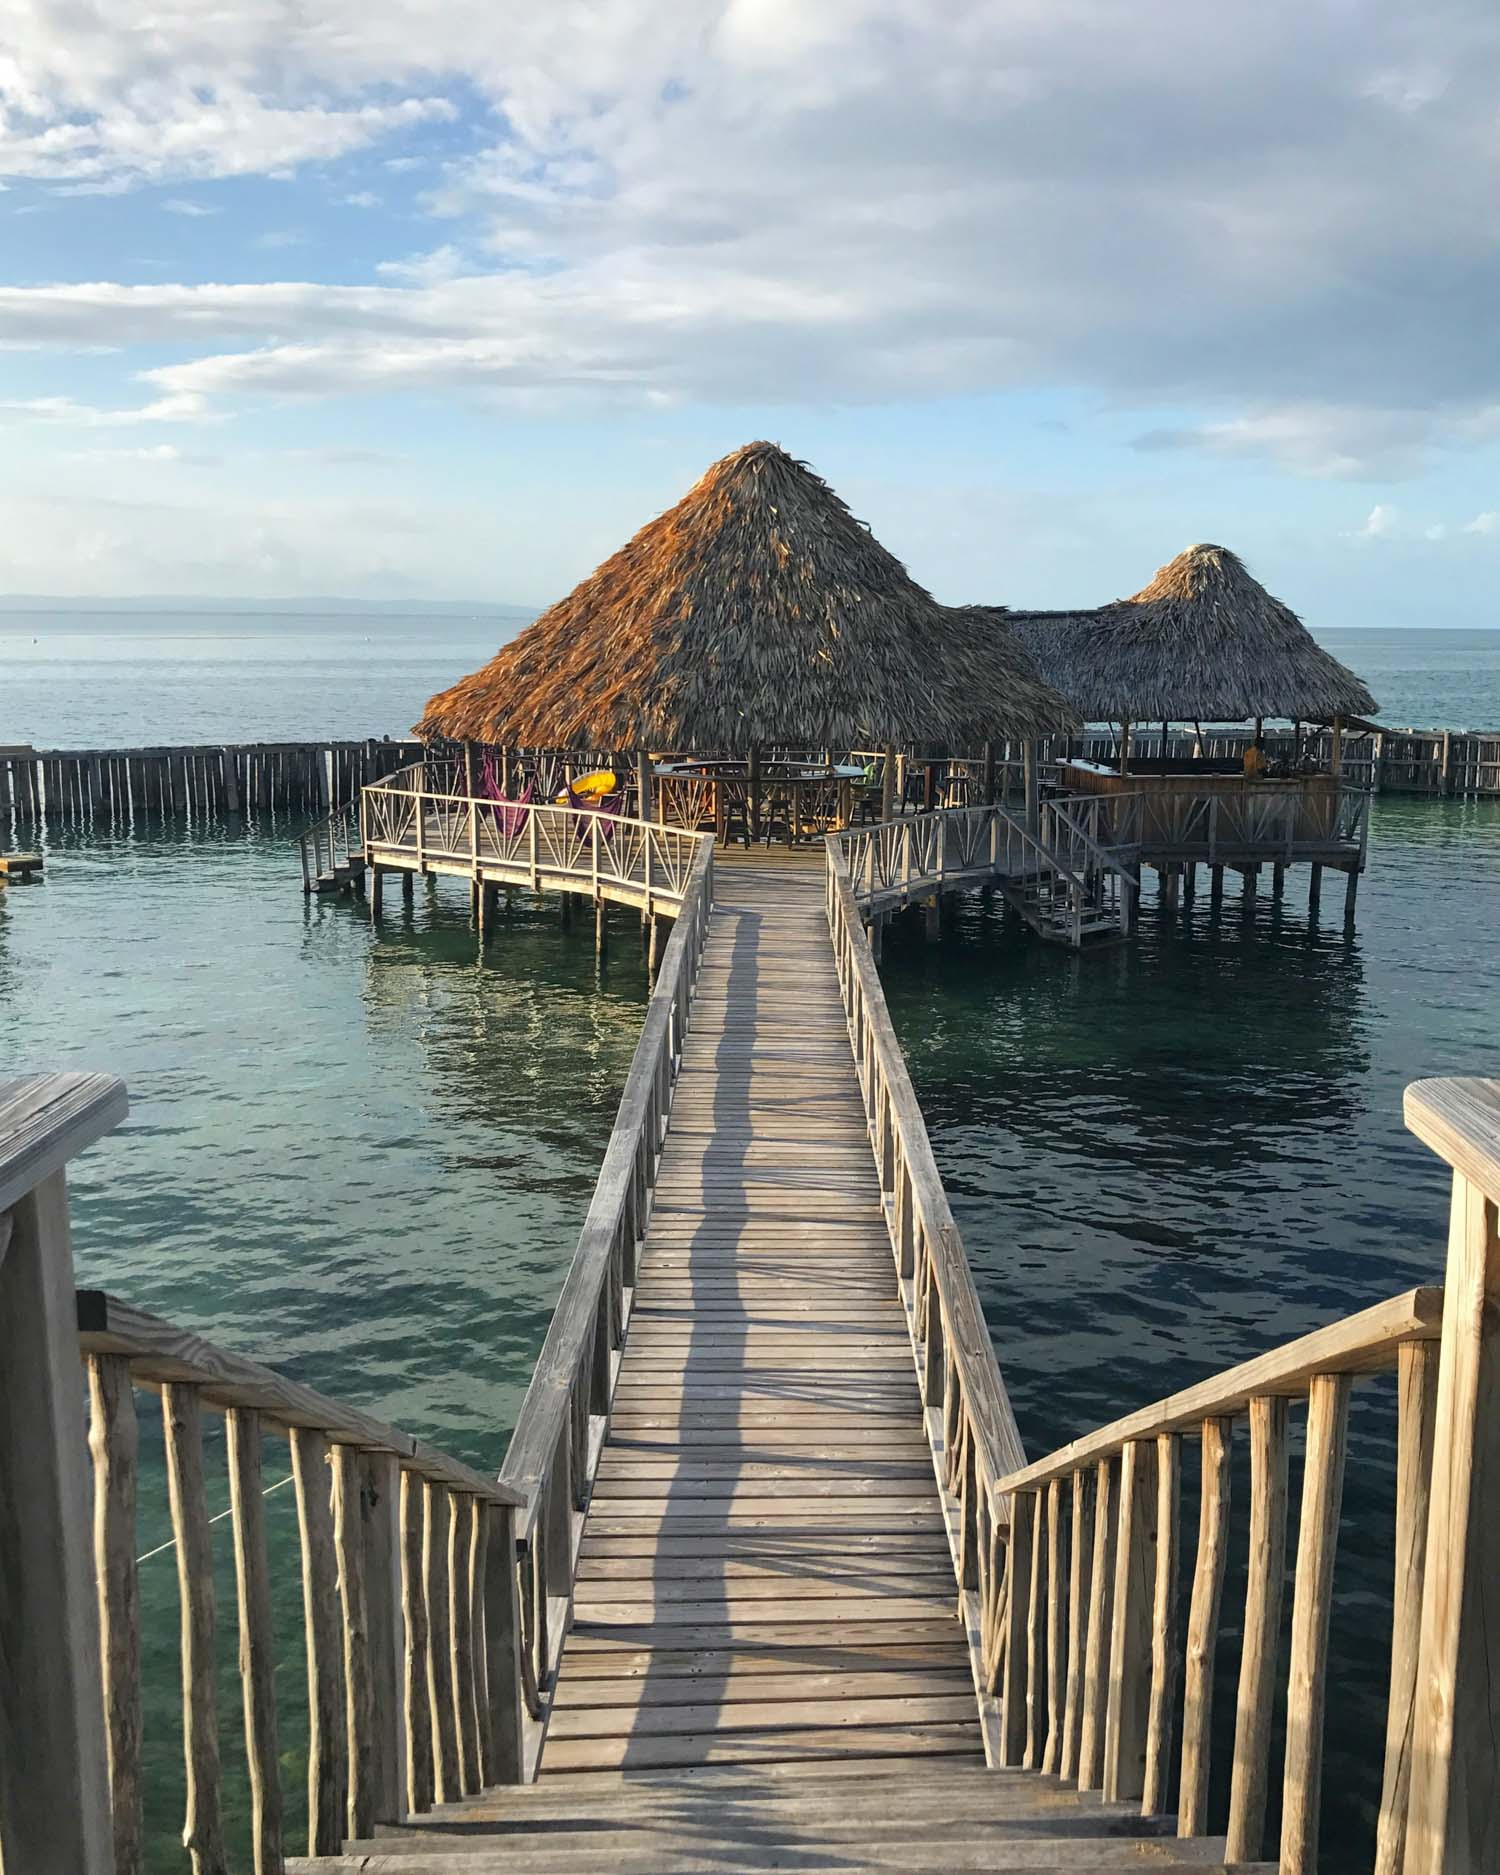 Restaurant in Belize on the water